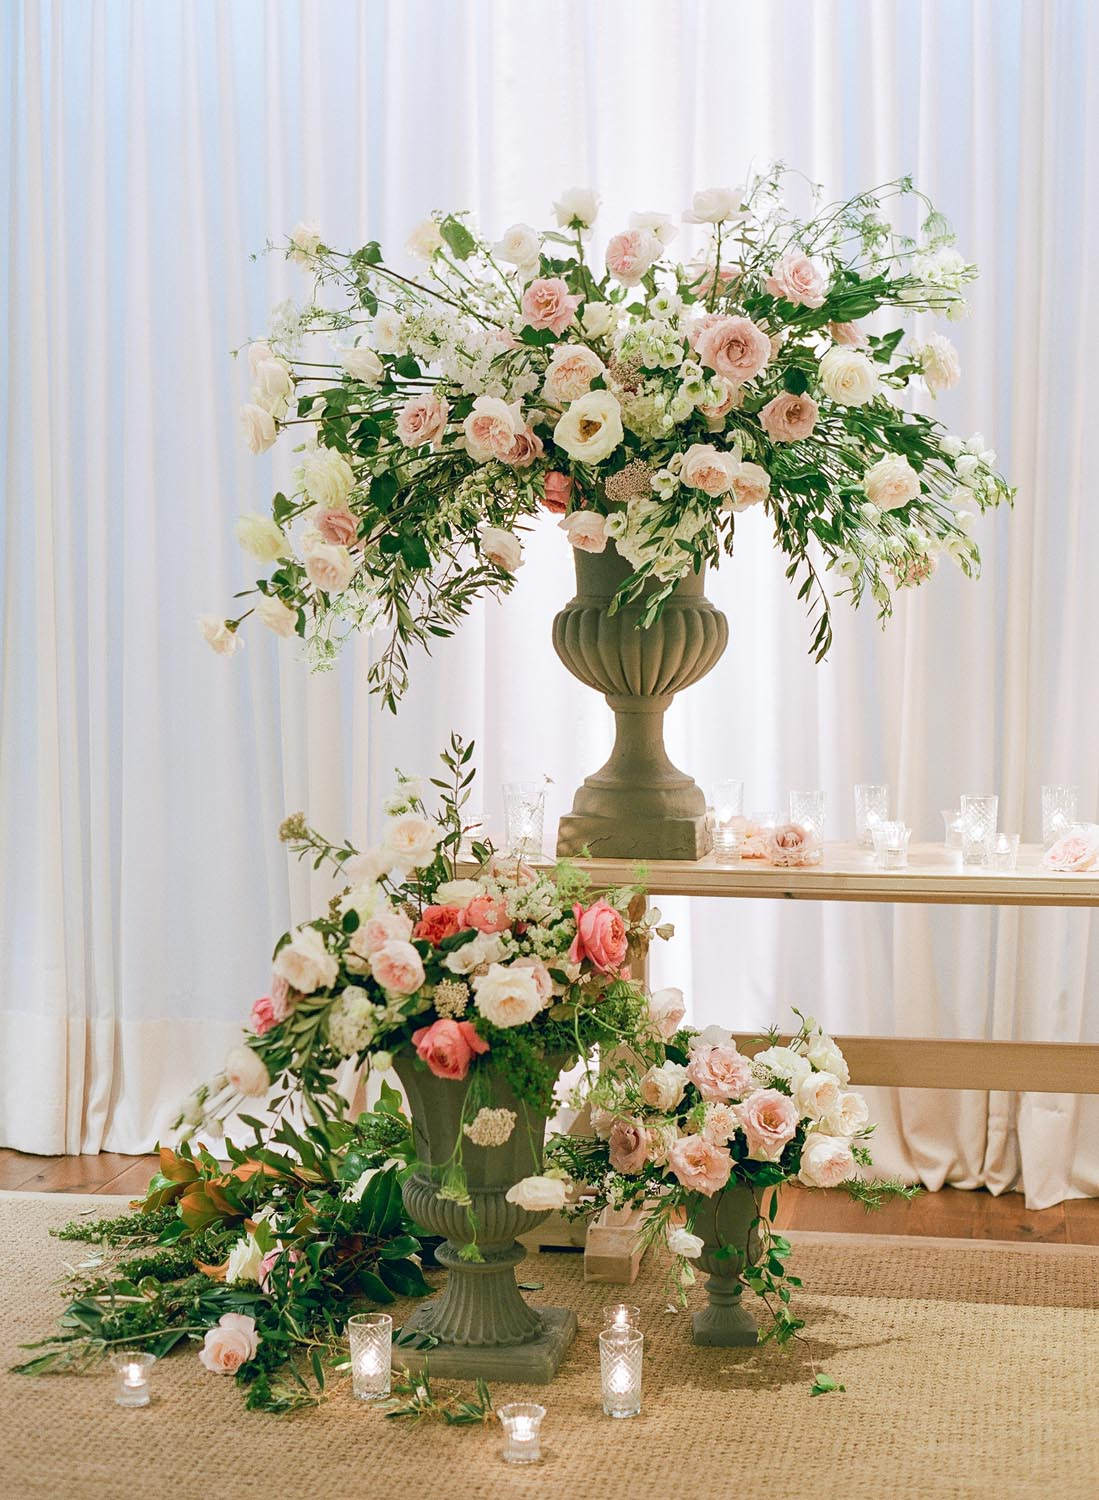 Lush foliage and floral arrangements to frame out the live band. Wedding planning and design by A Charleston Bride.